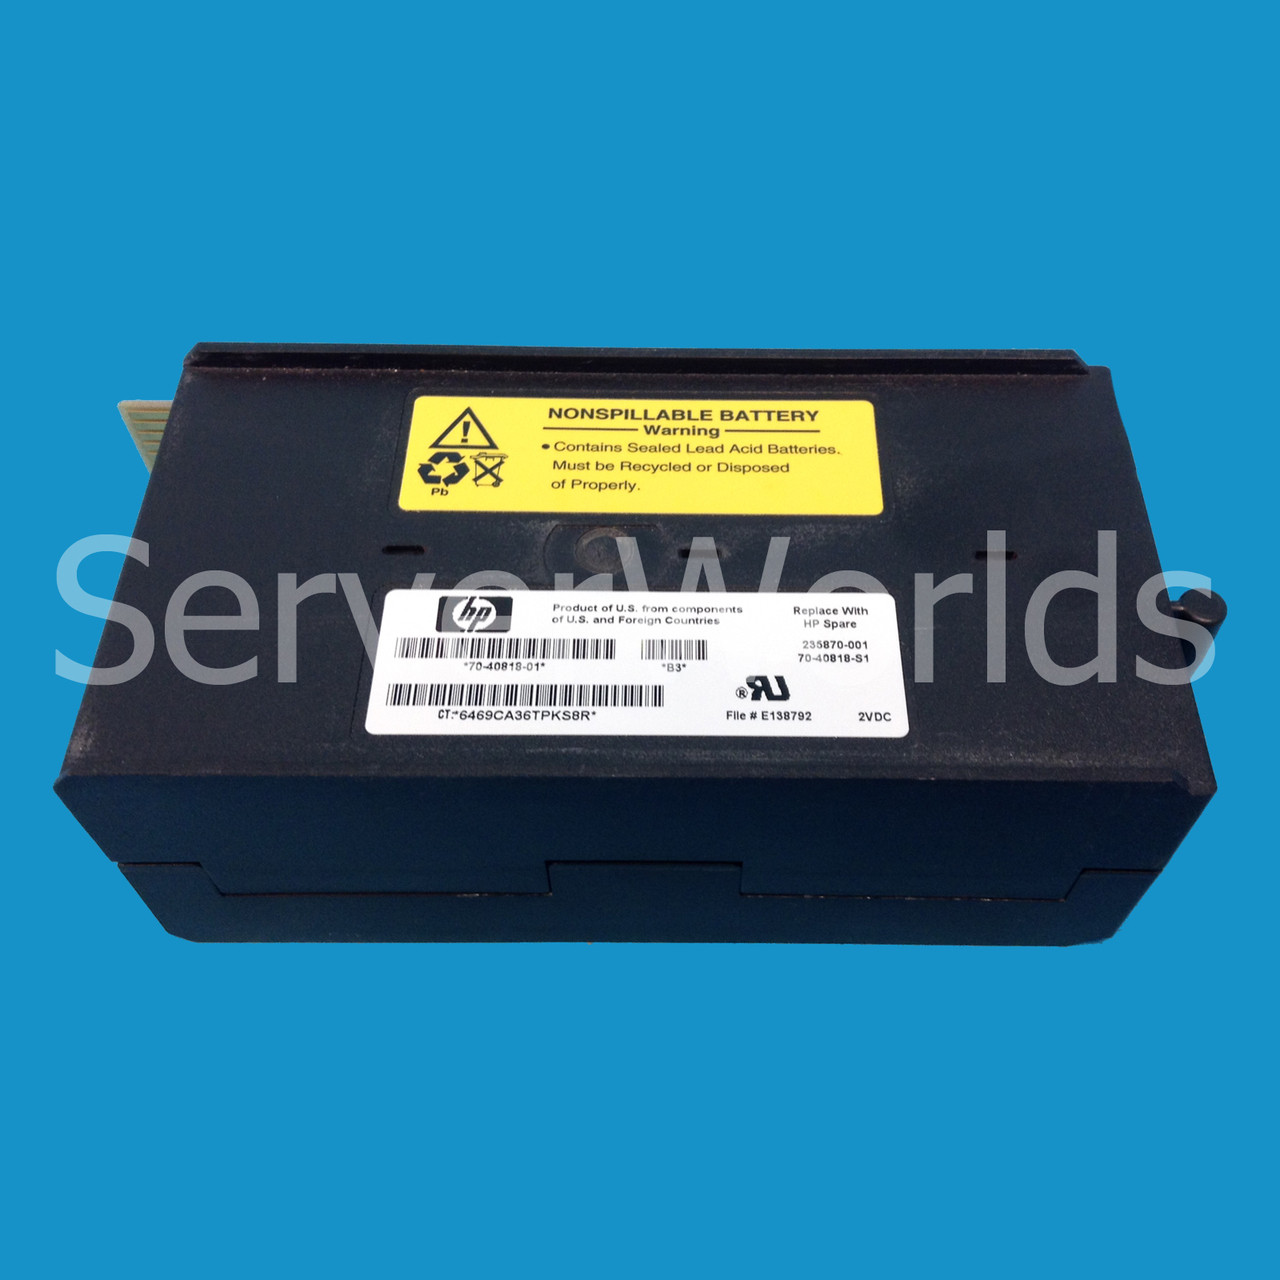 HP 70-40818-01 Nonspillable Battery